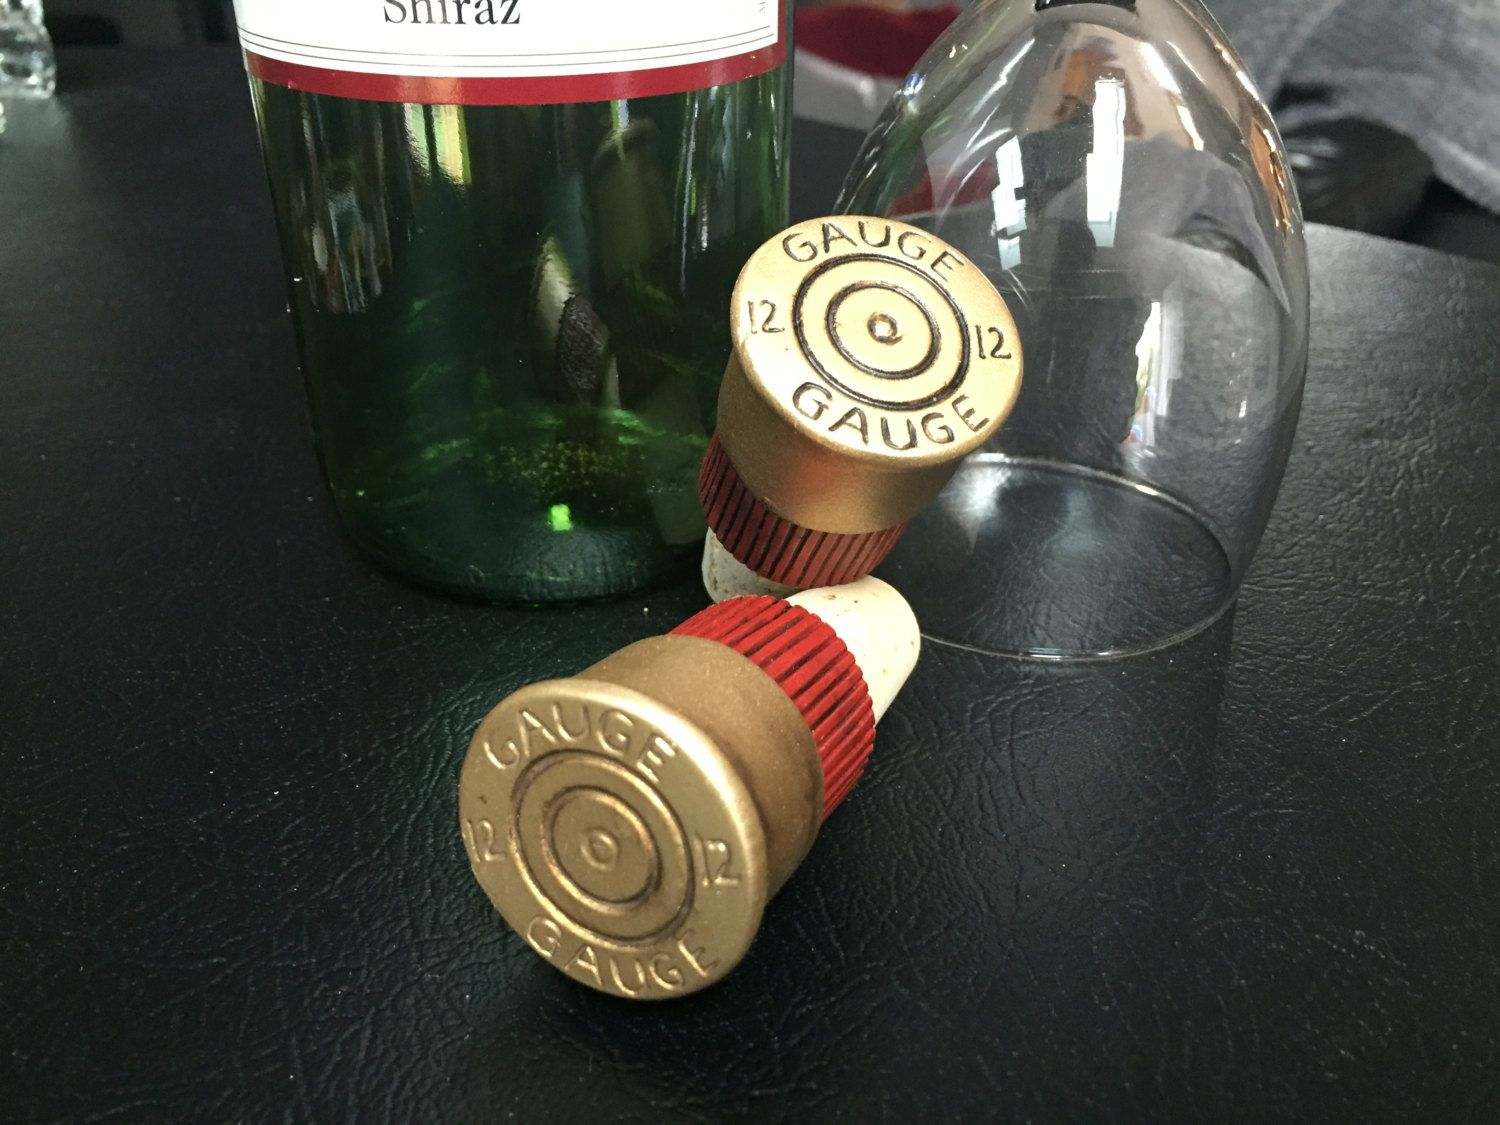 Repurposed Resin Cabinet Knob Wine Bottle Stopper - 12 Gauge ...